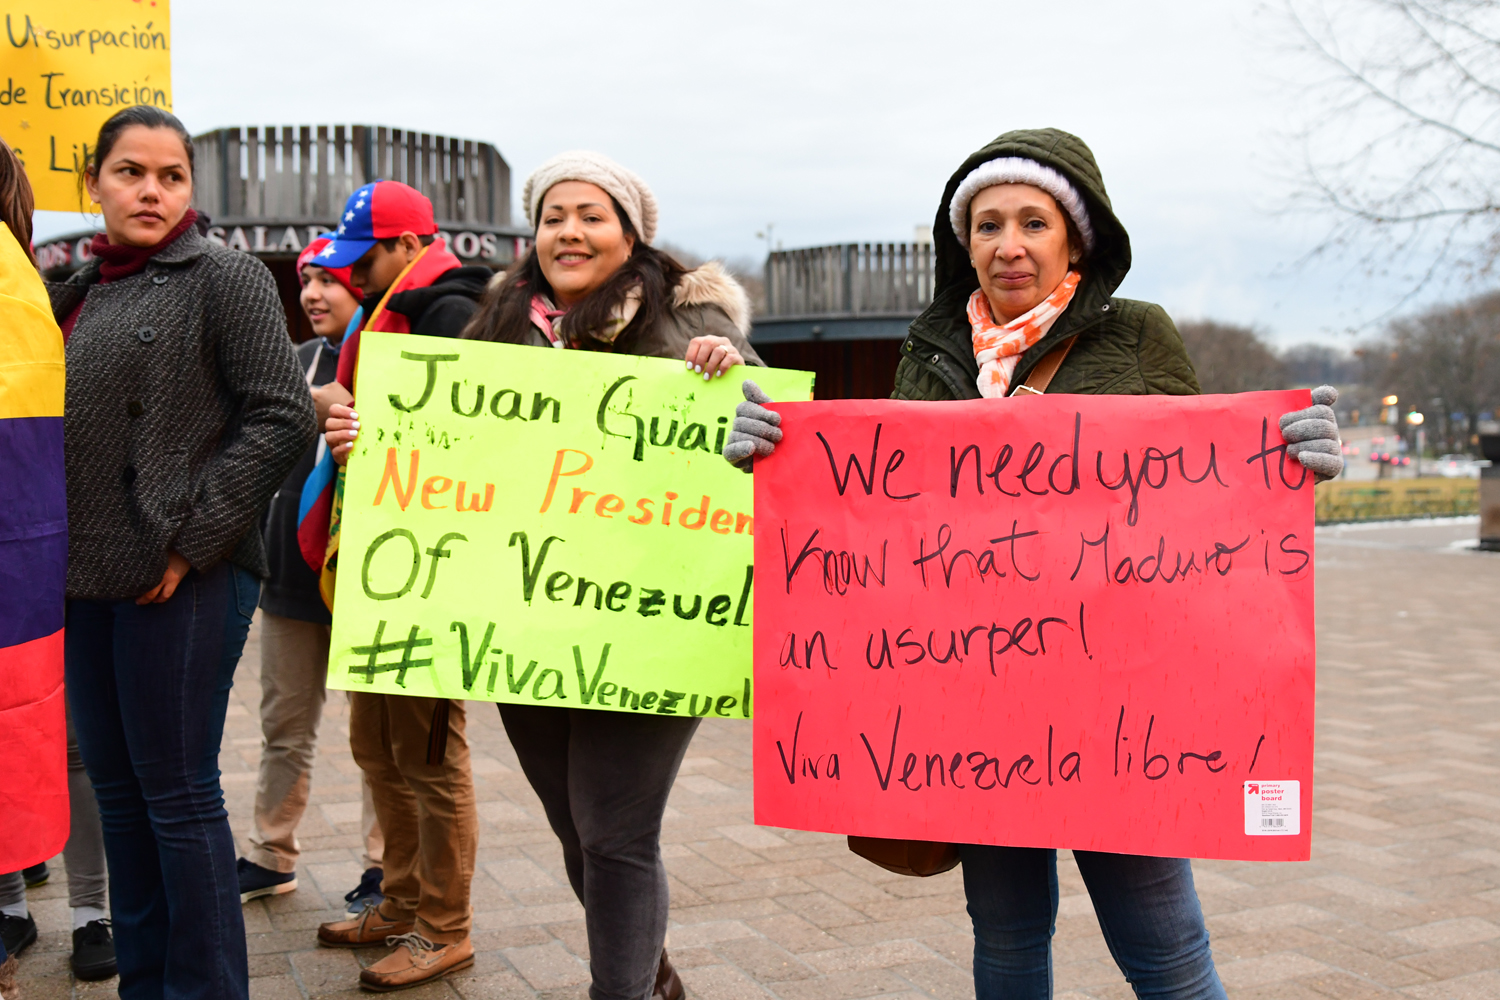 On Jan. 23, protesters in Schenley Plaza advocated for Juan Guaido over Nicolas Maduro.